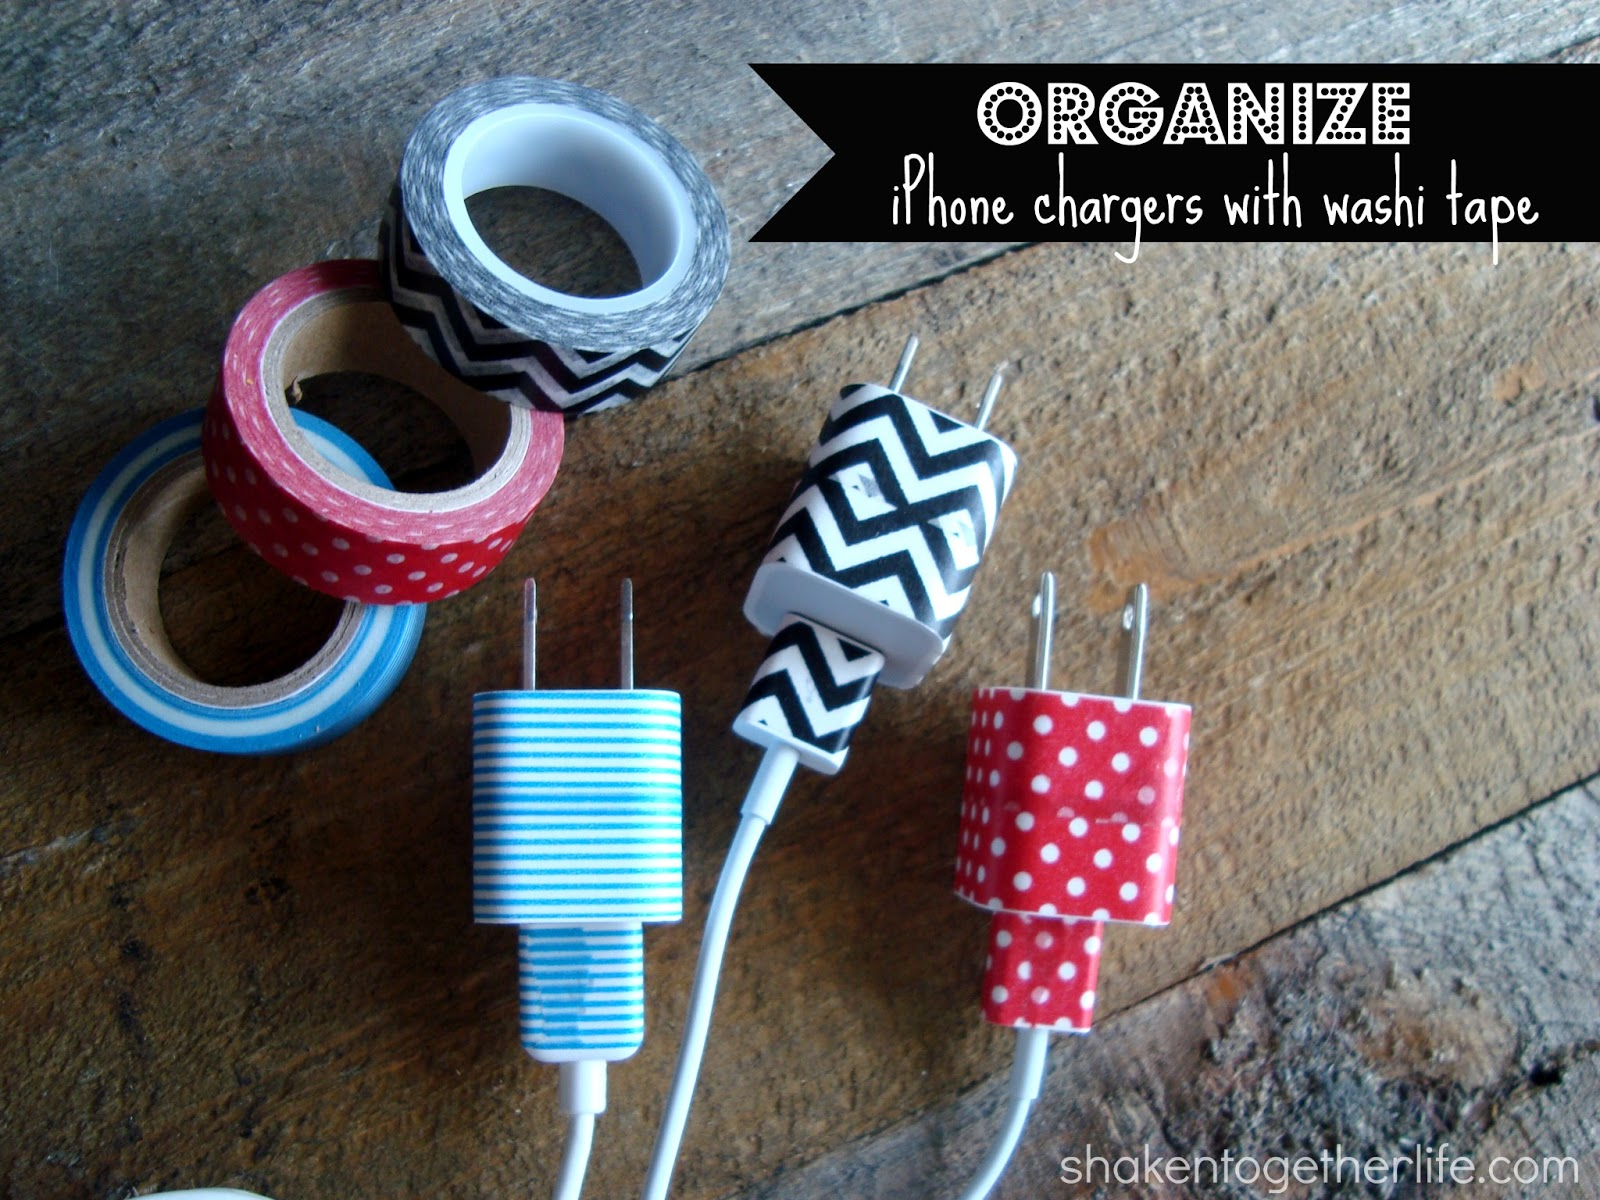 Who Has My Charger Is A Frequently Used Phrase In The Bett Household Until Now Behold Organize Your Iphone Chargers With Washi Tape